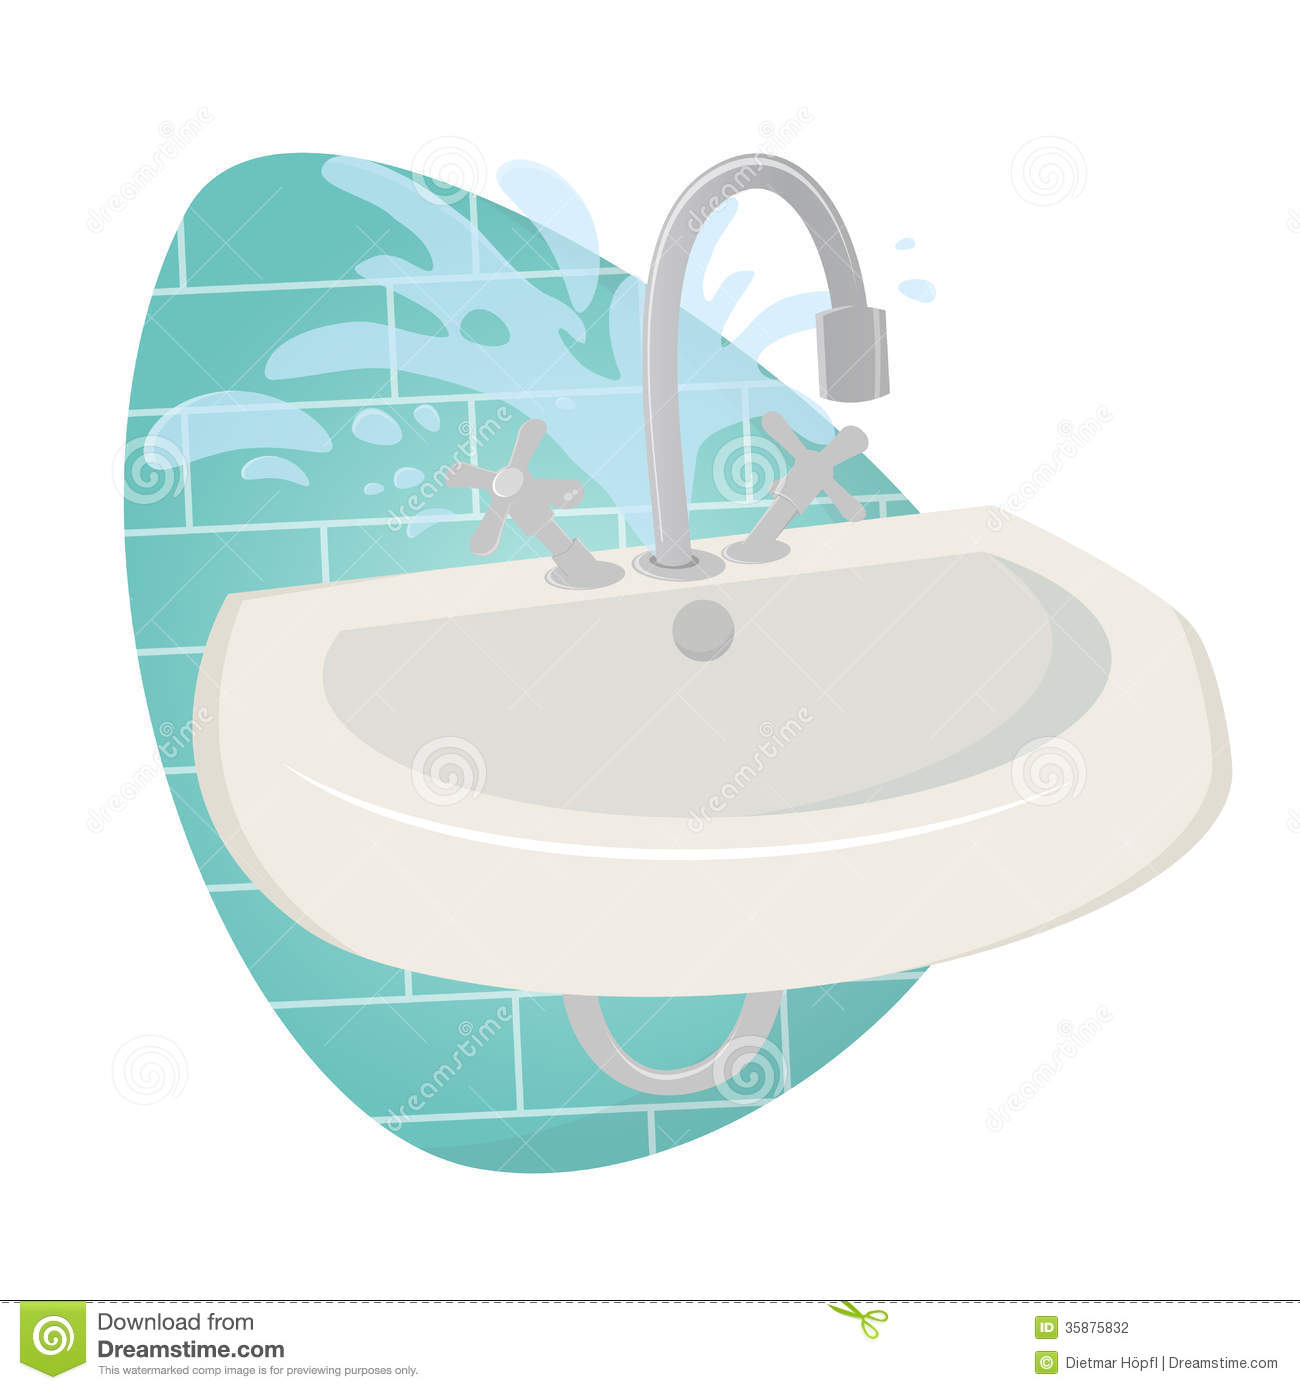 Damaged Sink Stock graphy Image